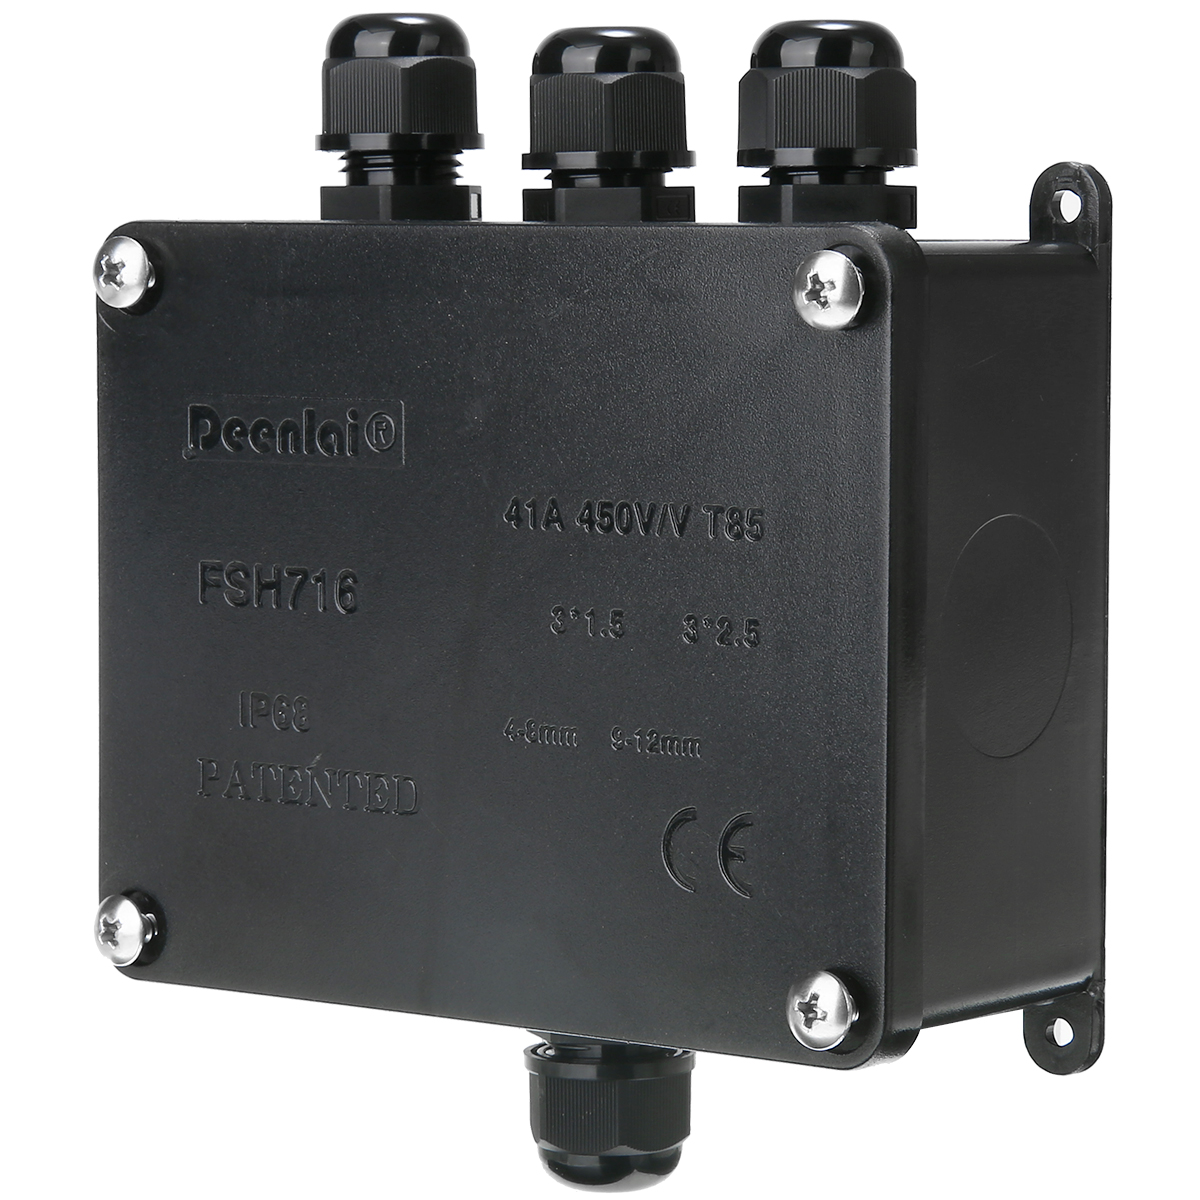 1pc LED Waterproof Junction Box Electrical Terminal 4 Way Underground Cable Protection Sleeve Connector IP68 3 Port